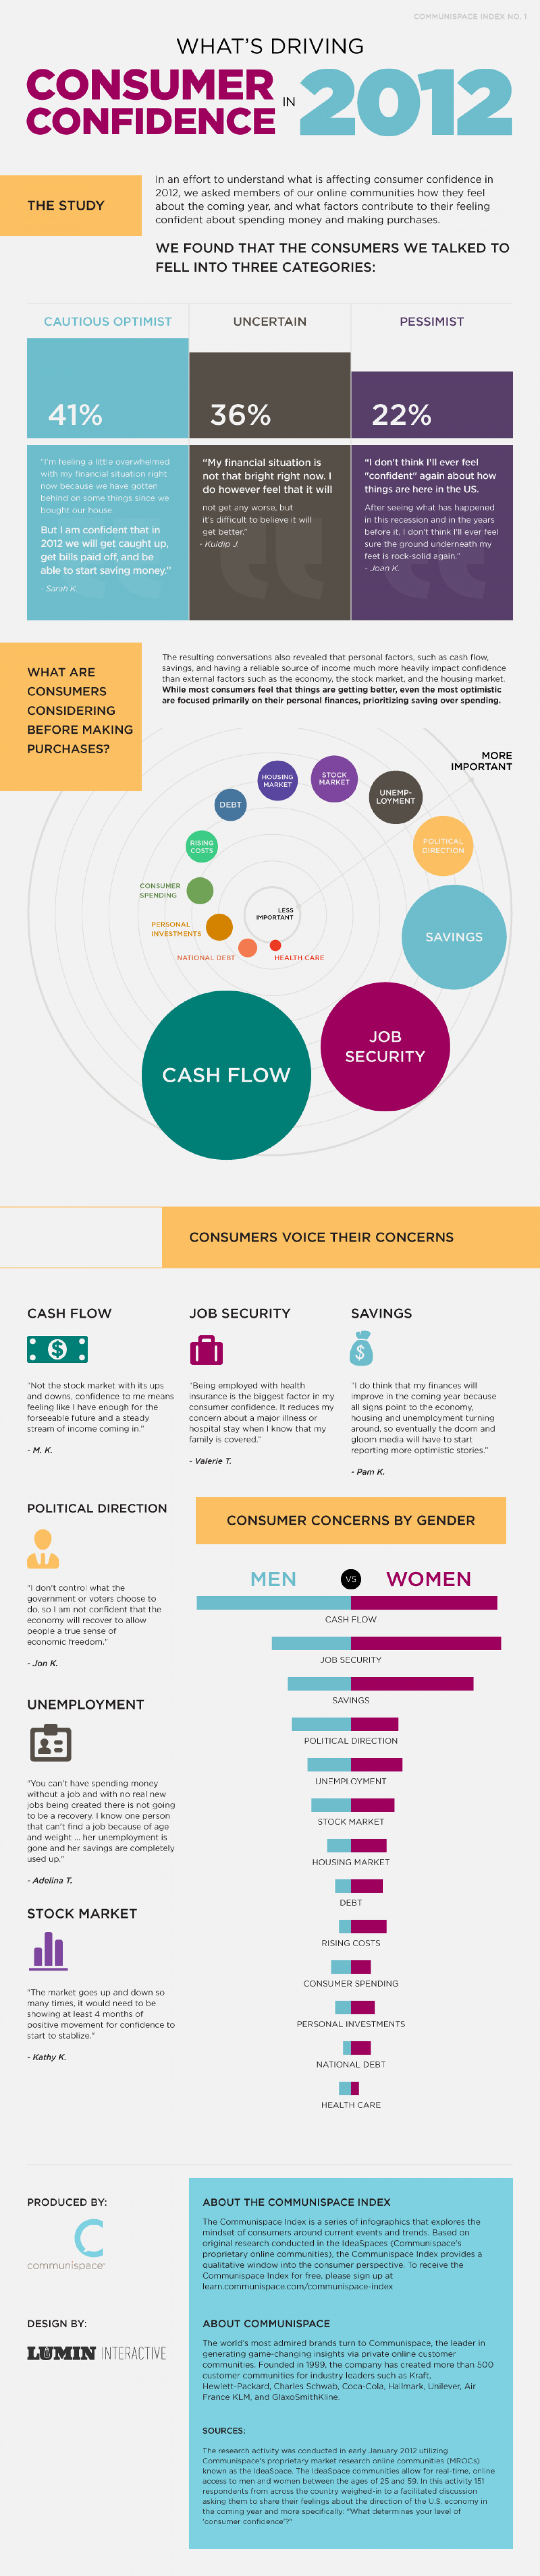 Consumer Confidence 2012 Infographic